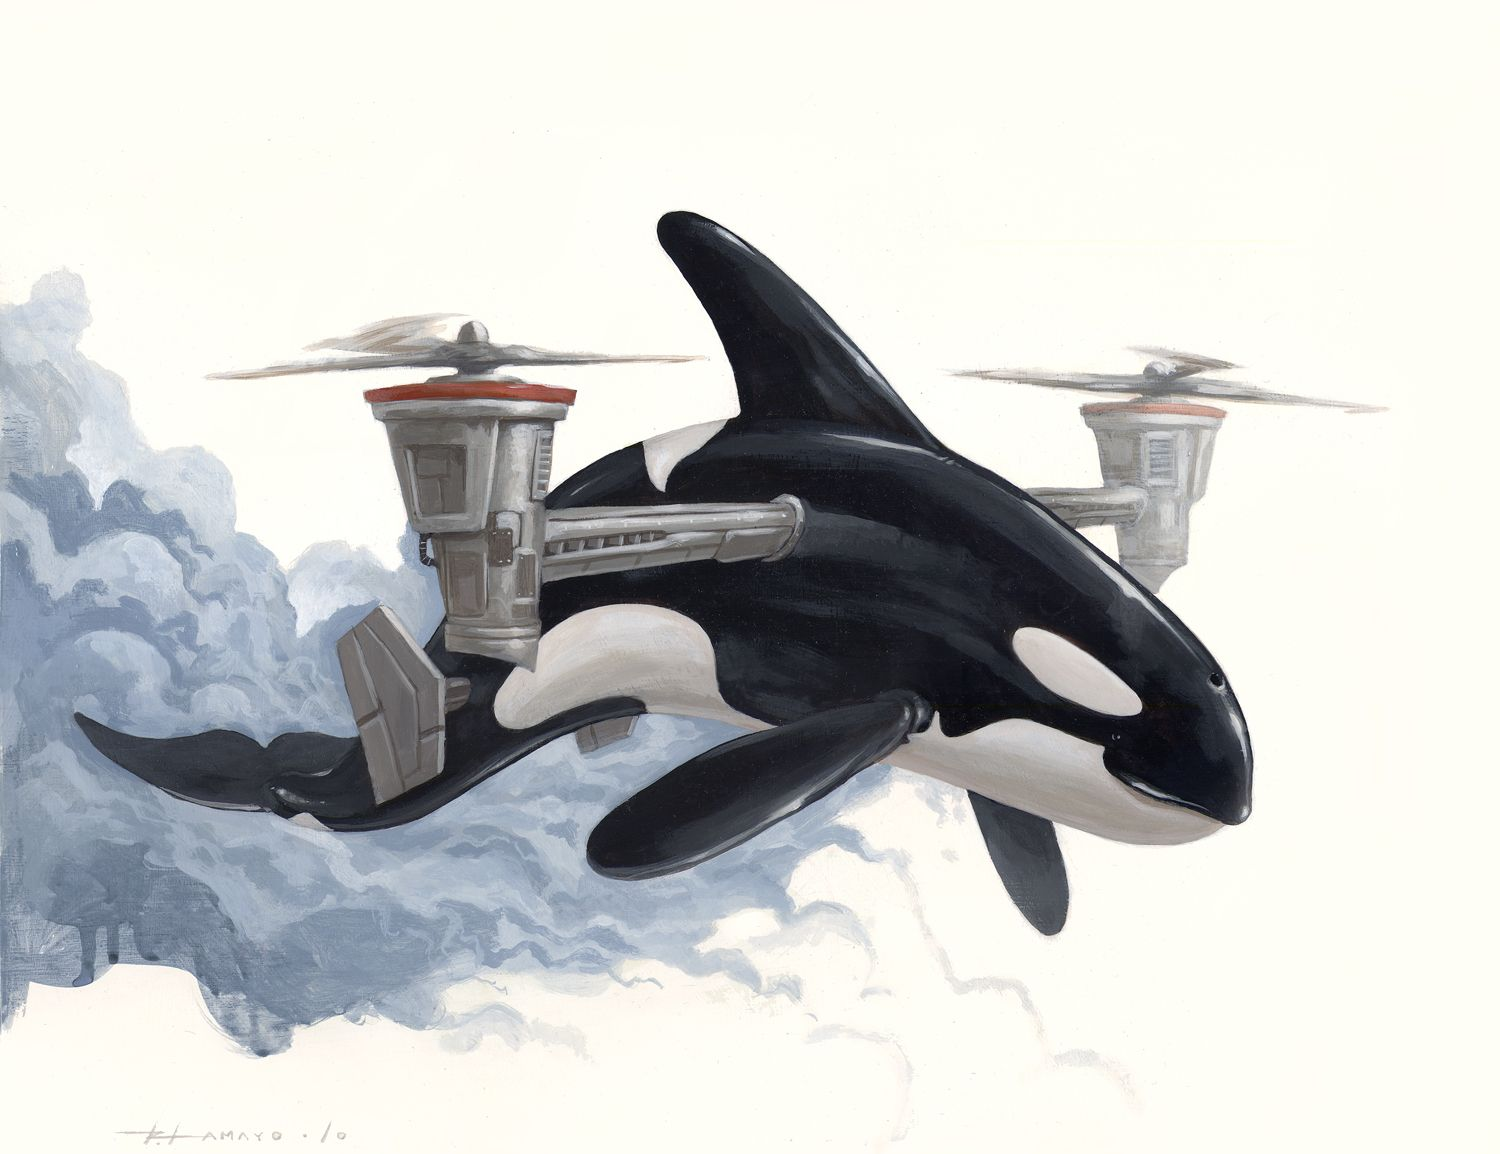 helicopter killer whale by roland tamayo | killer whales i | pinterest